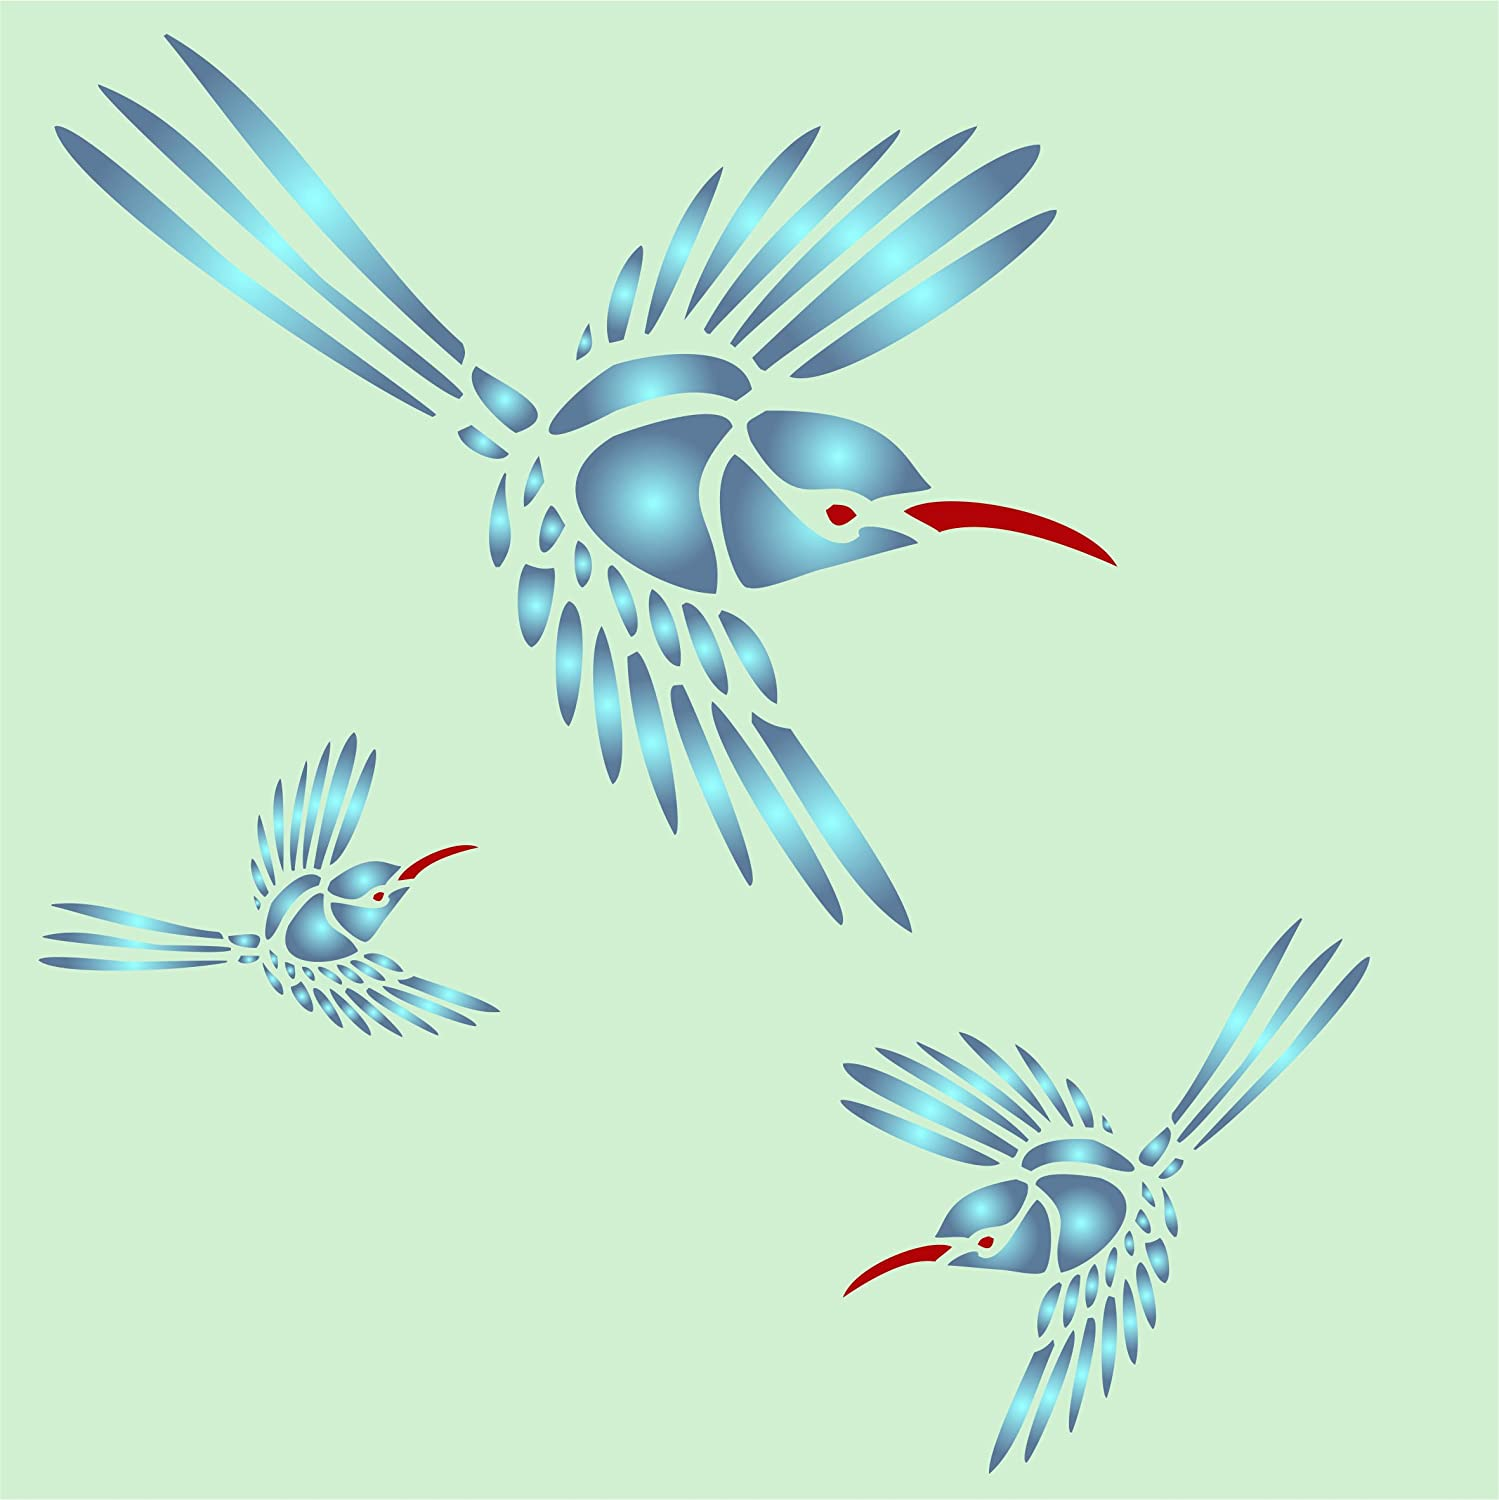 Amazon hummingbird stencil size 5w x 6h reusable wall amazon hummingbird stencil size 5w x 6h reusable wall stencils for painting best quality wall art dcor ideas use on walls floors fabrics amipublicfo Gallery